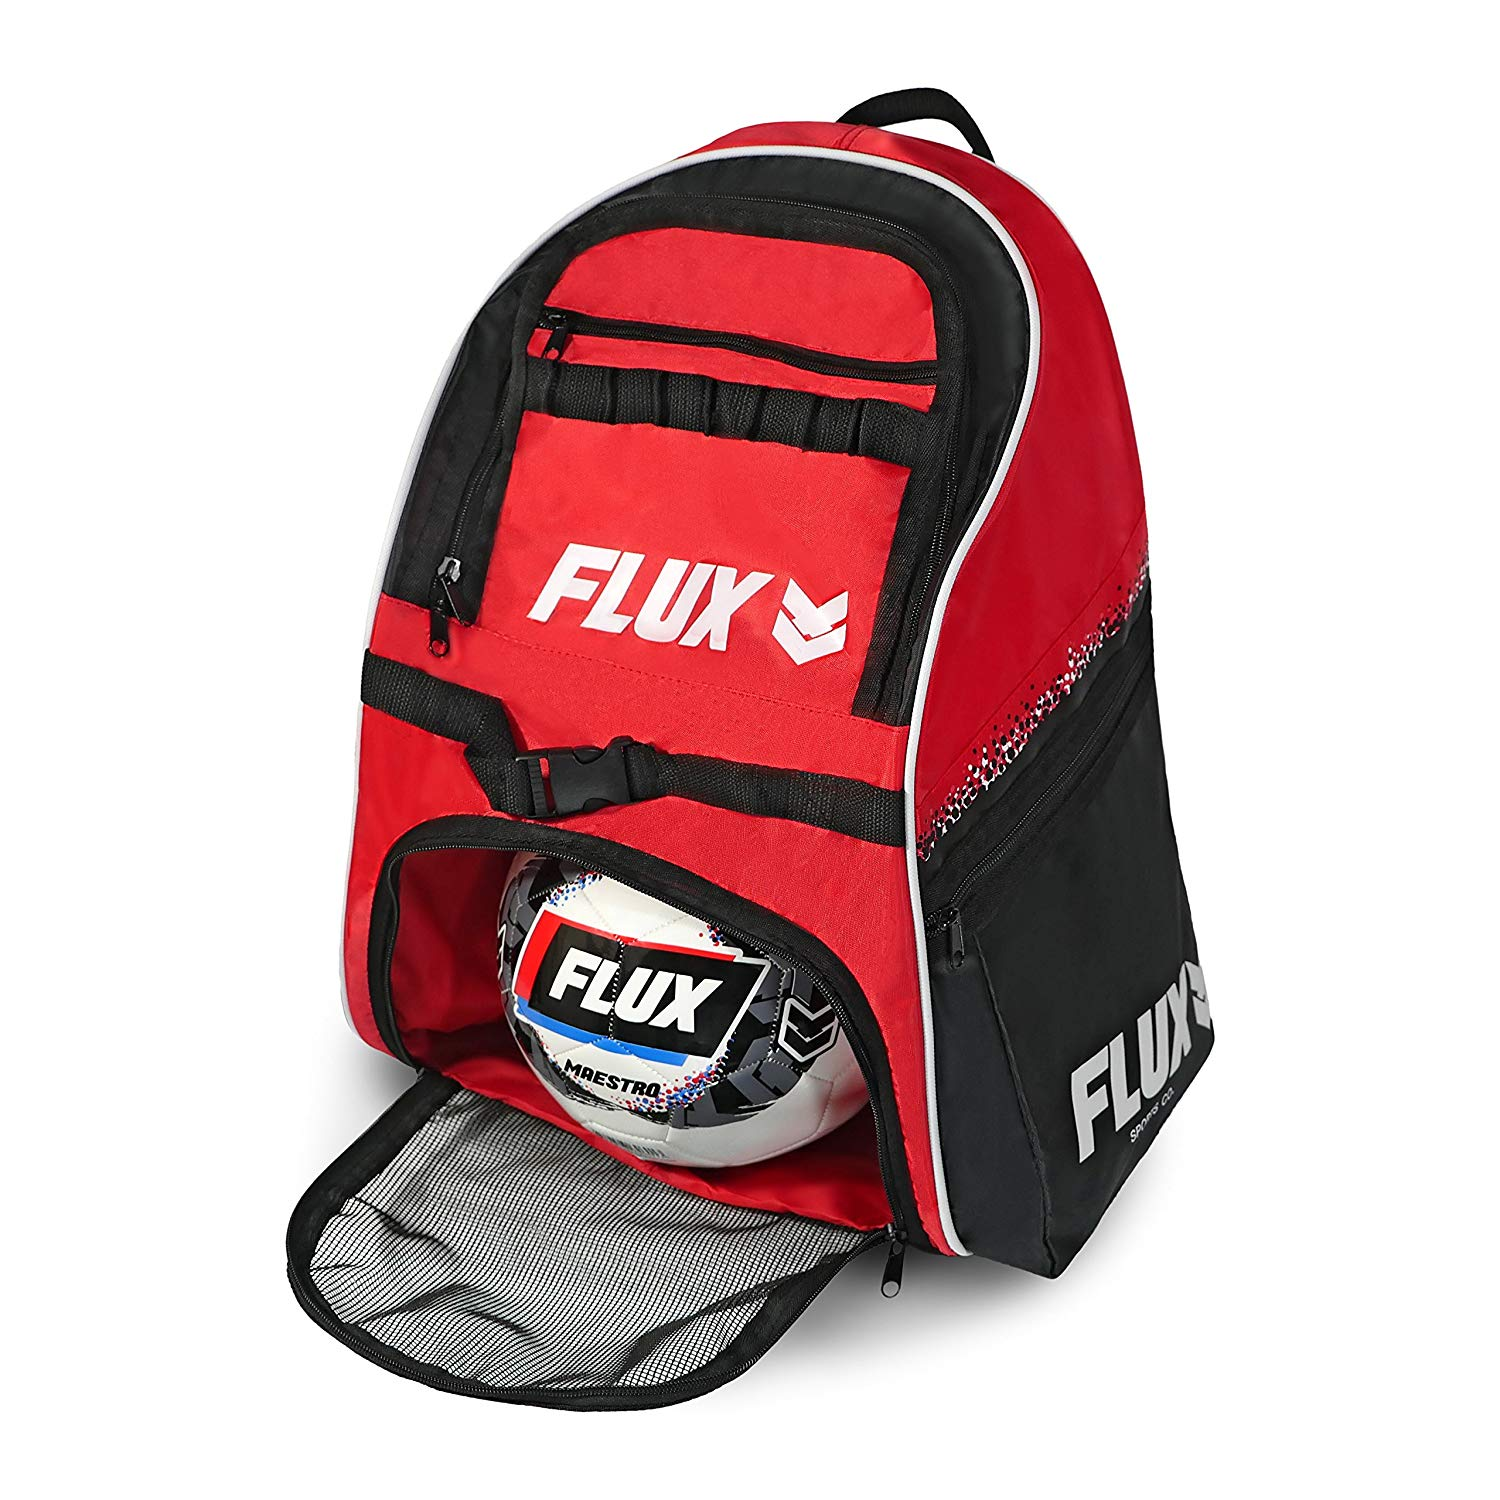 Flux Guardian Soccer Bag with Ball Holder